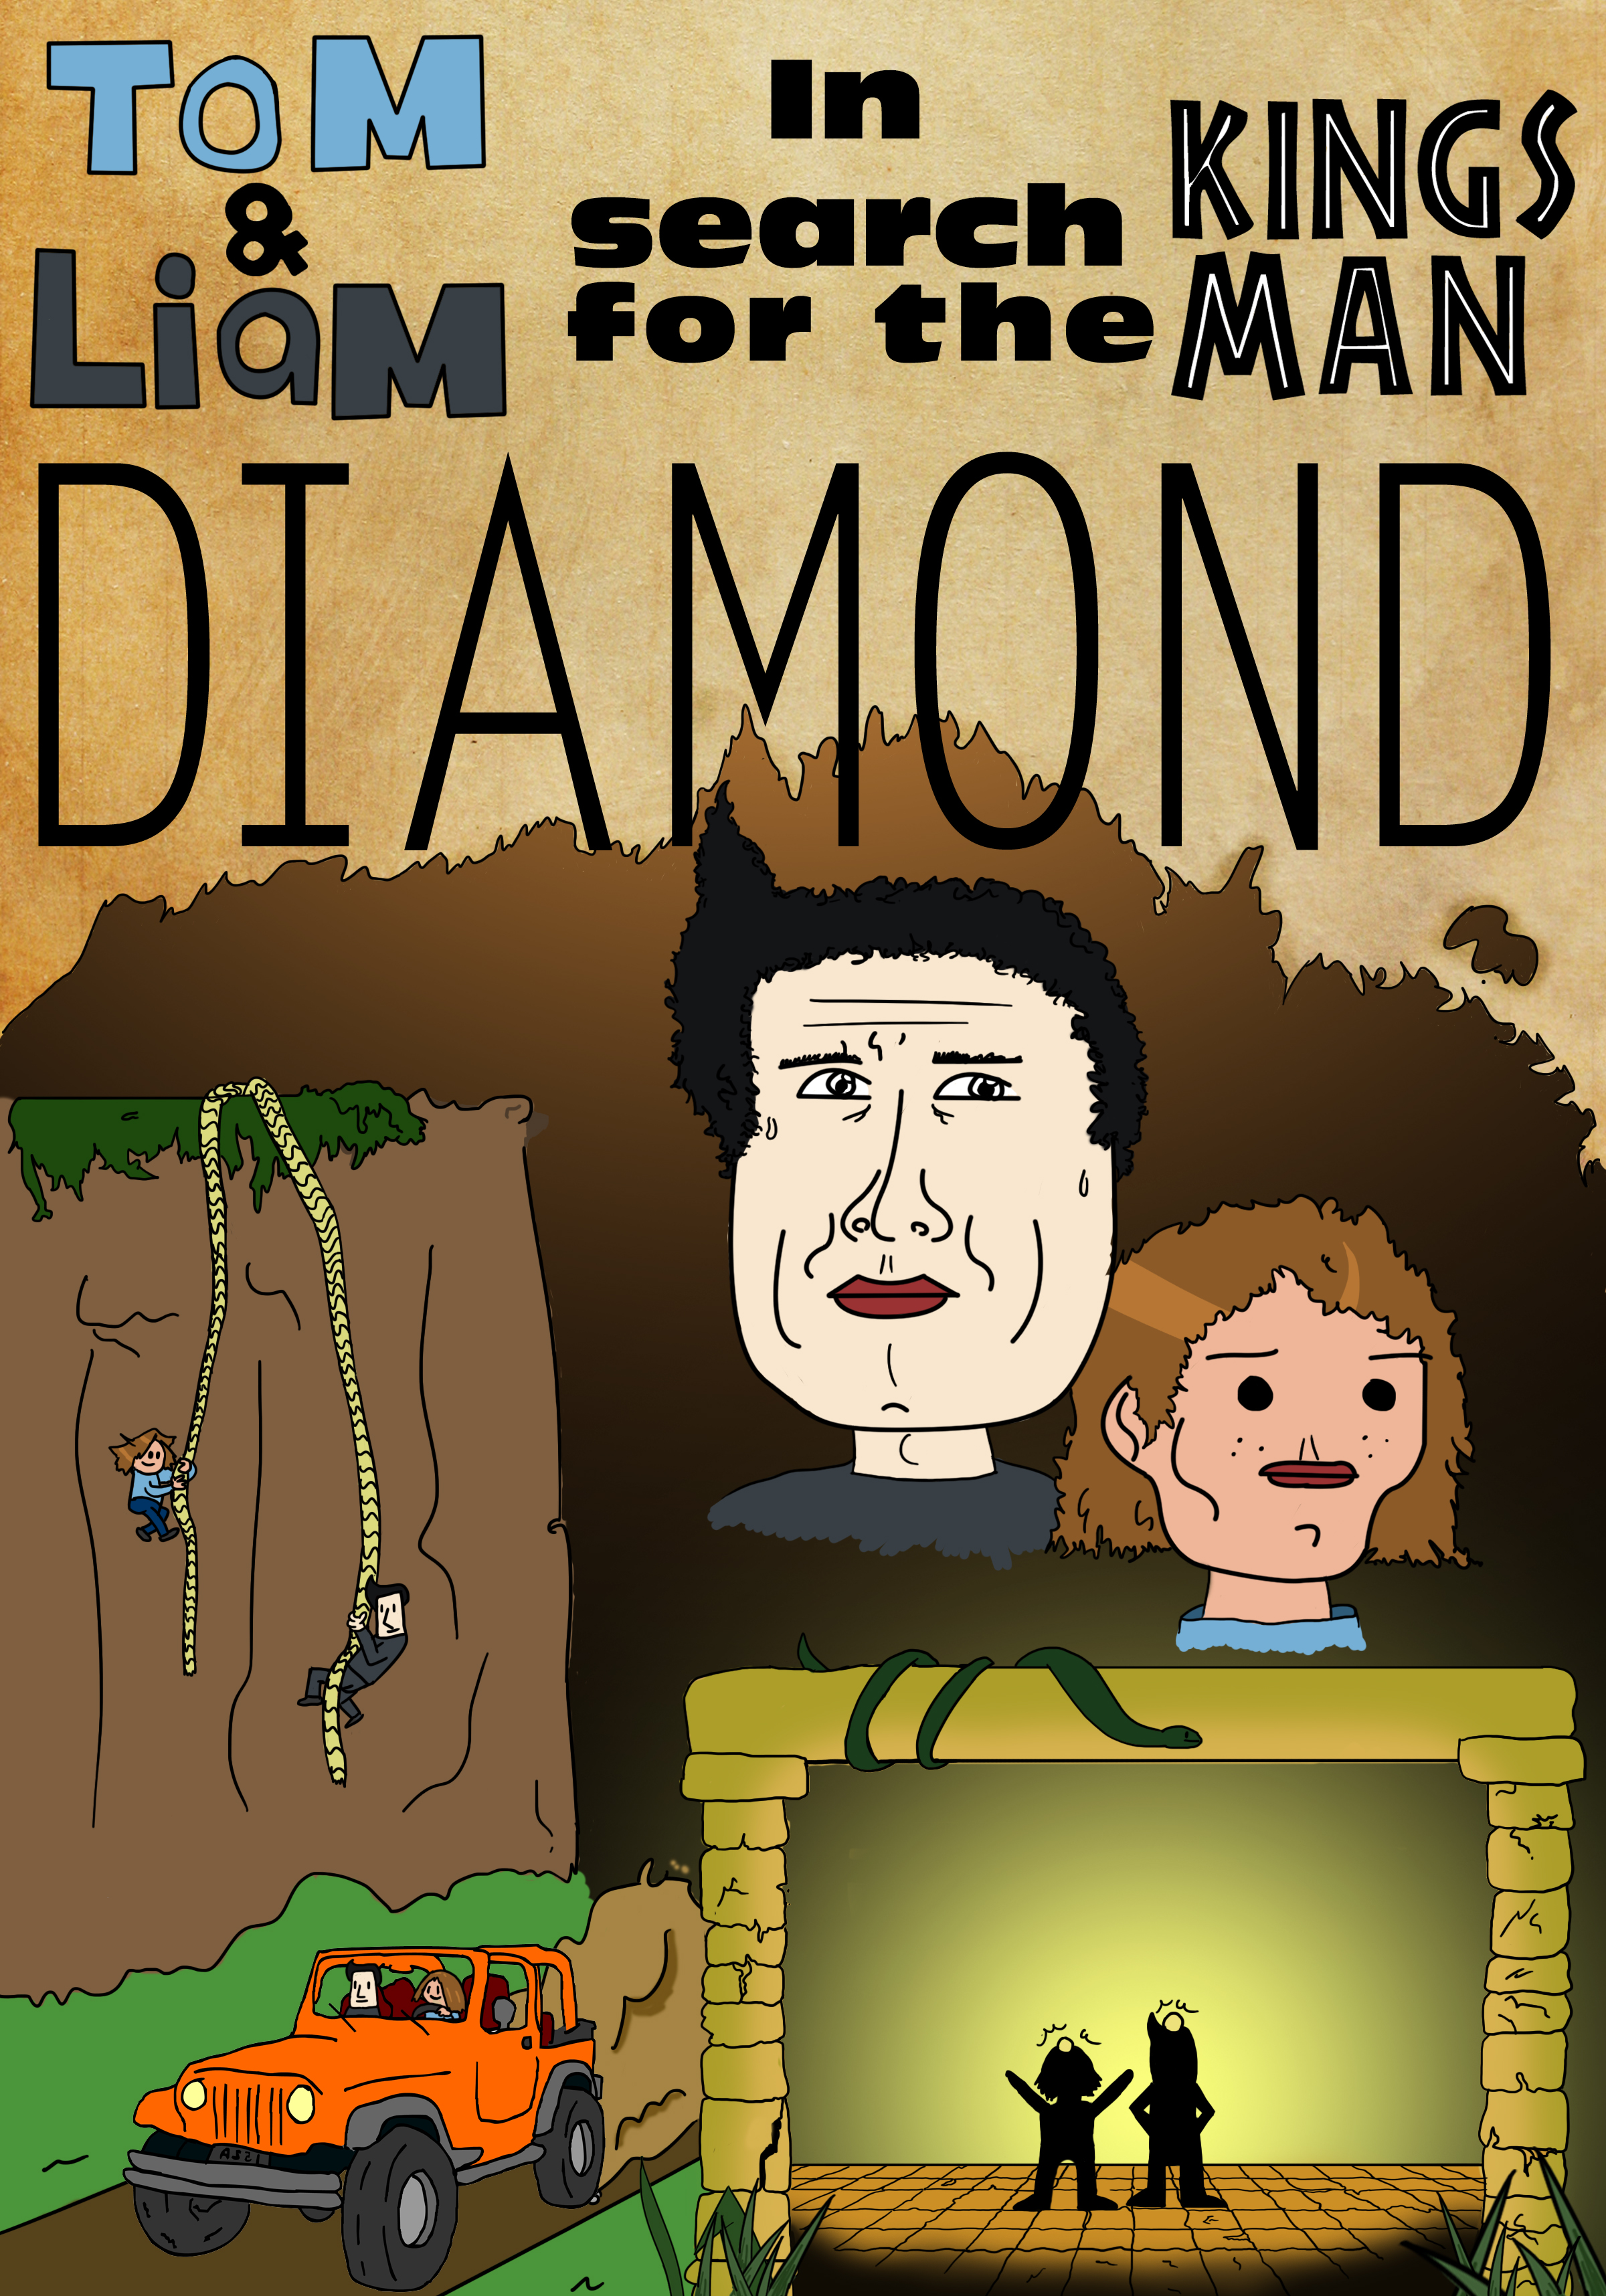 Cover art for T and L comic